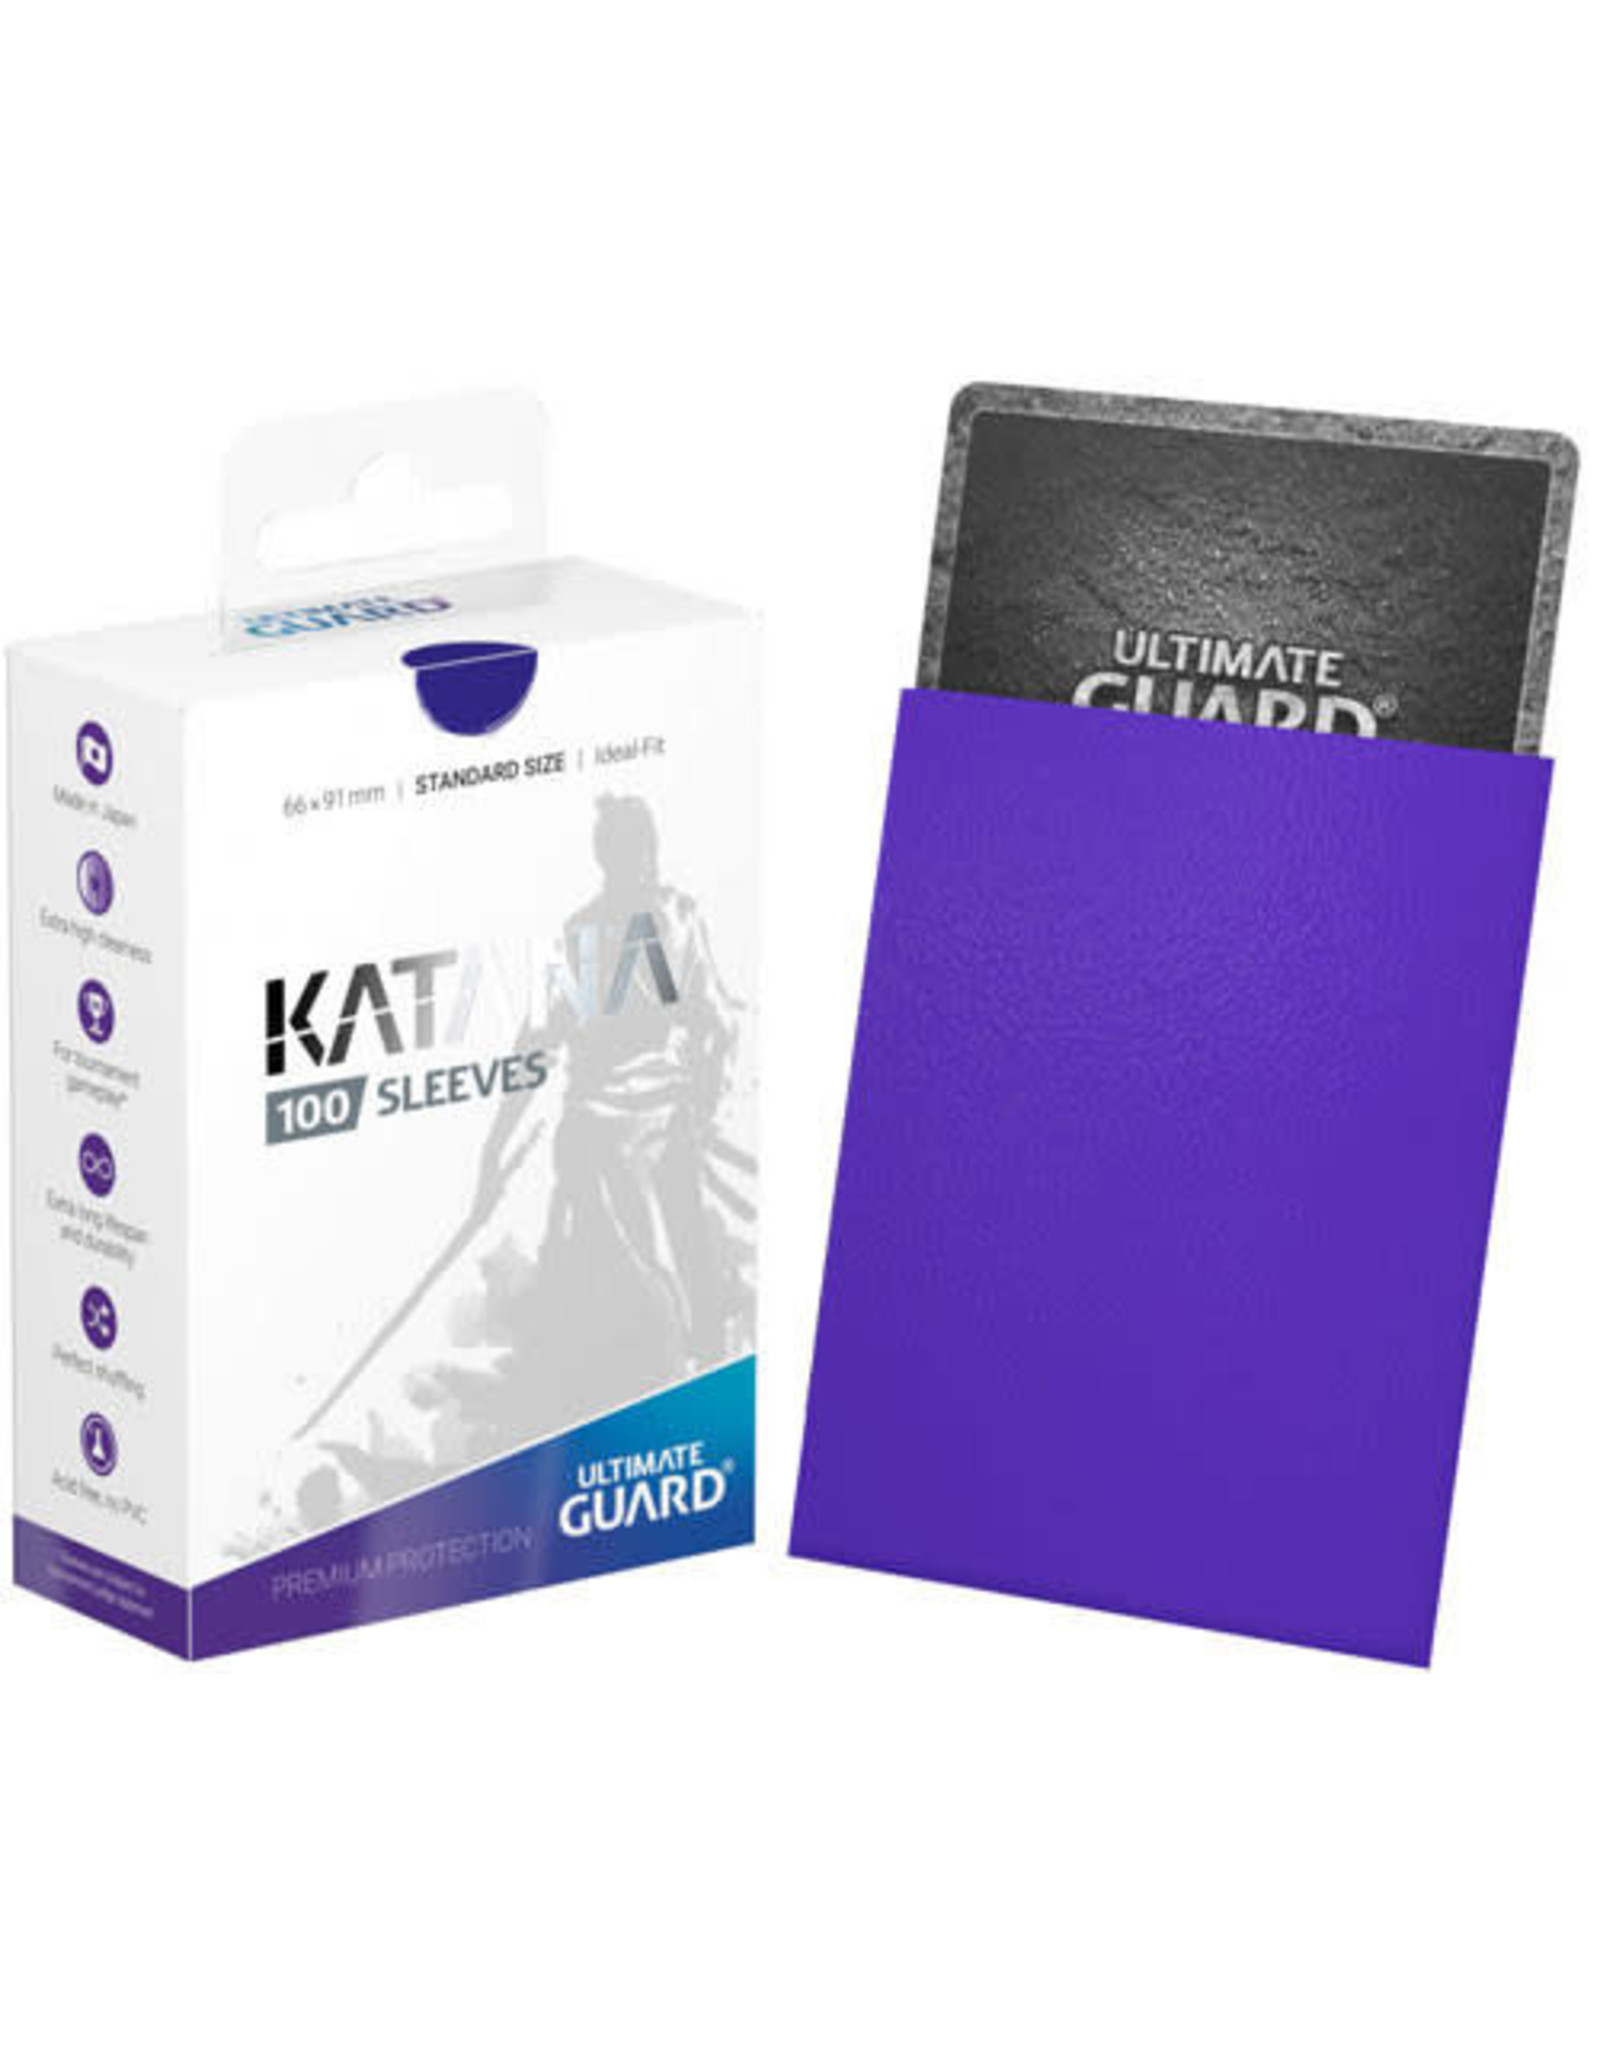 Ultimate Guard Ultimate Guard Katana Sleeves (100) Blue